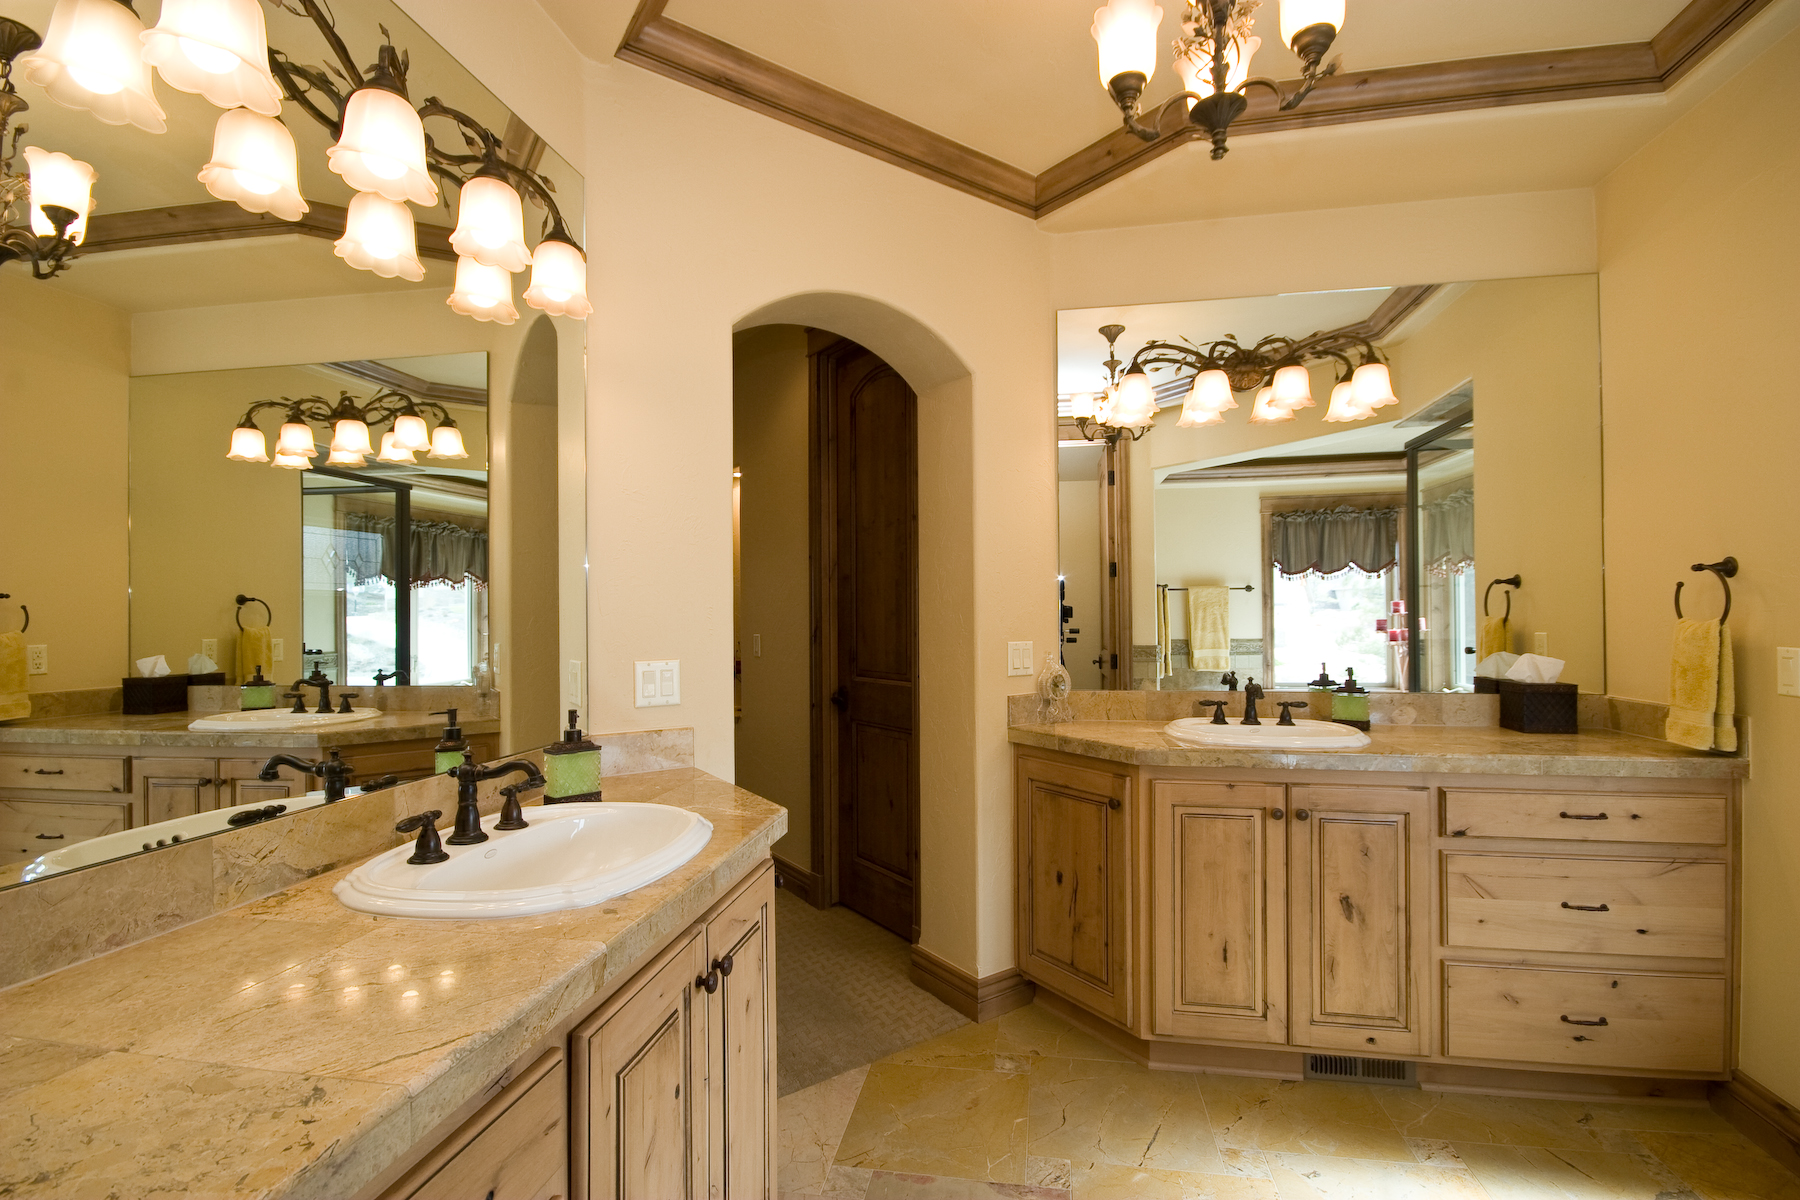 Fancy Bathroom: 7 Steps For Staging Your Home In 2012